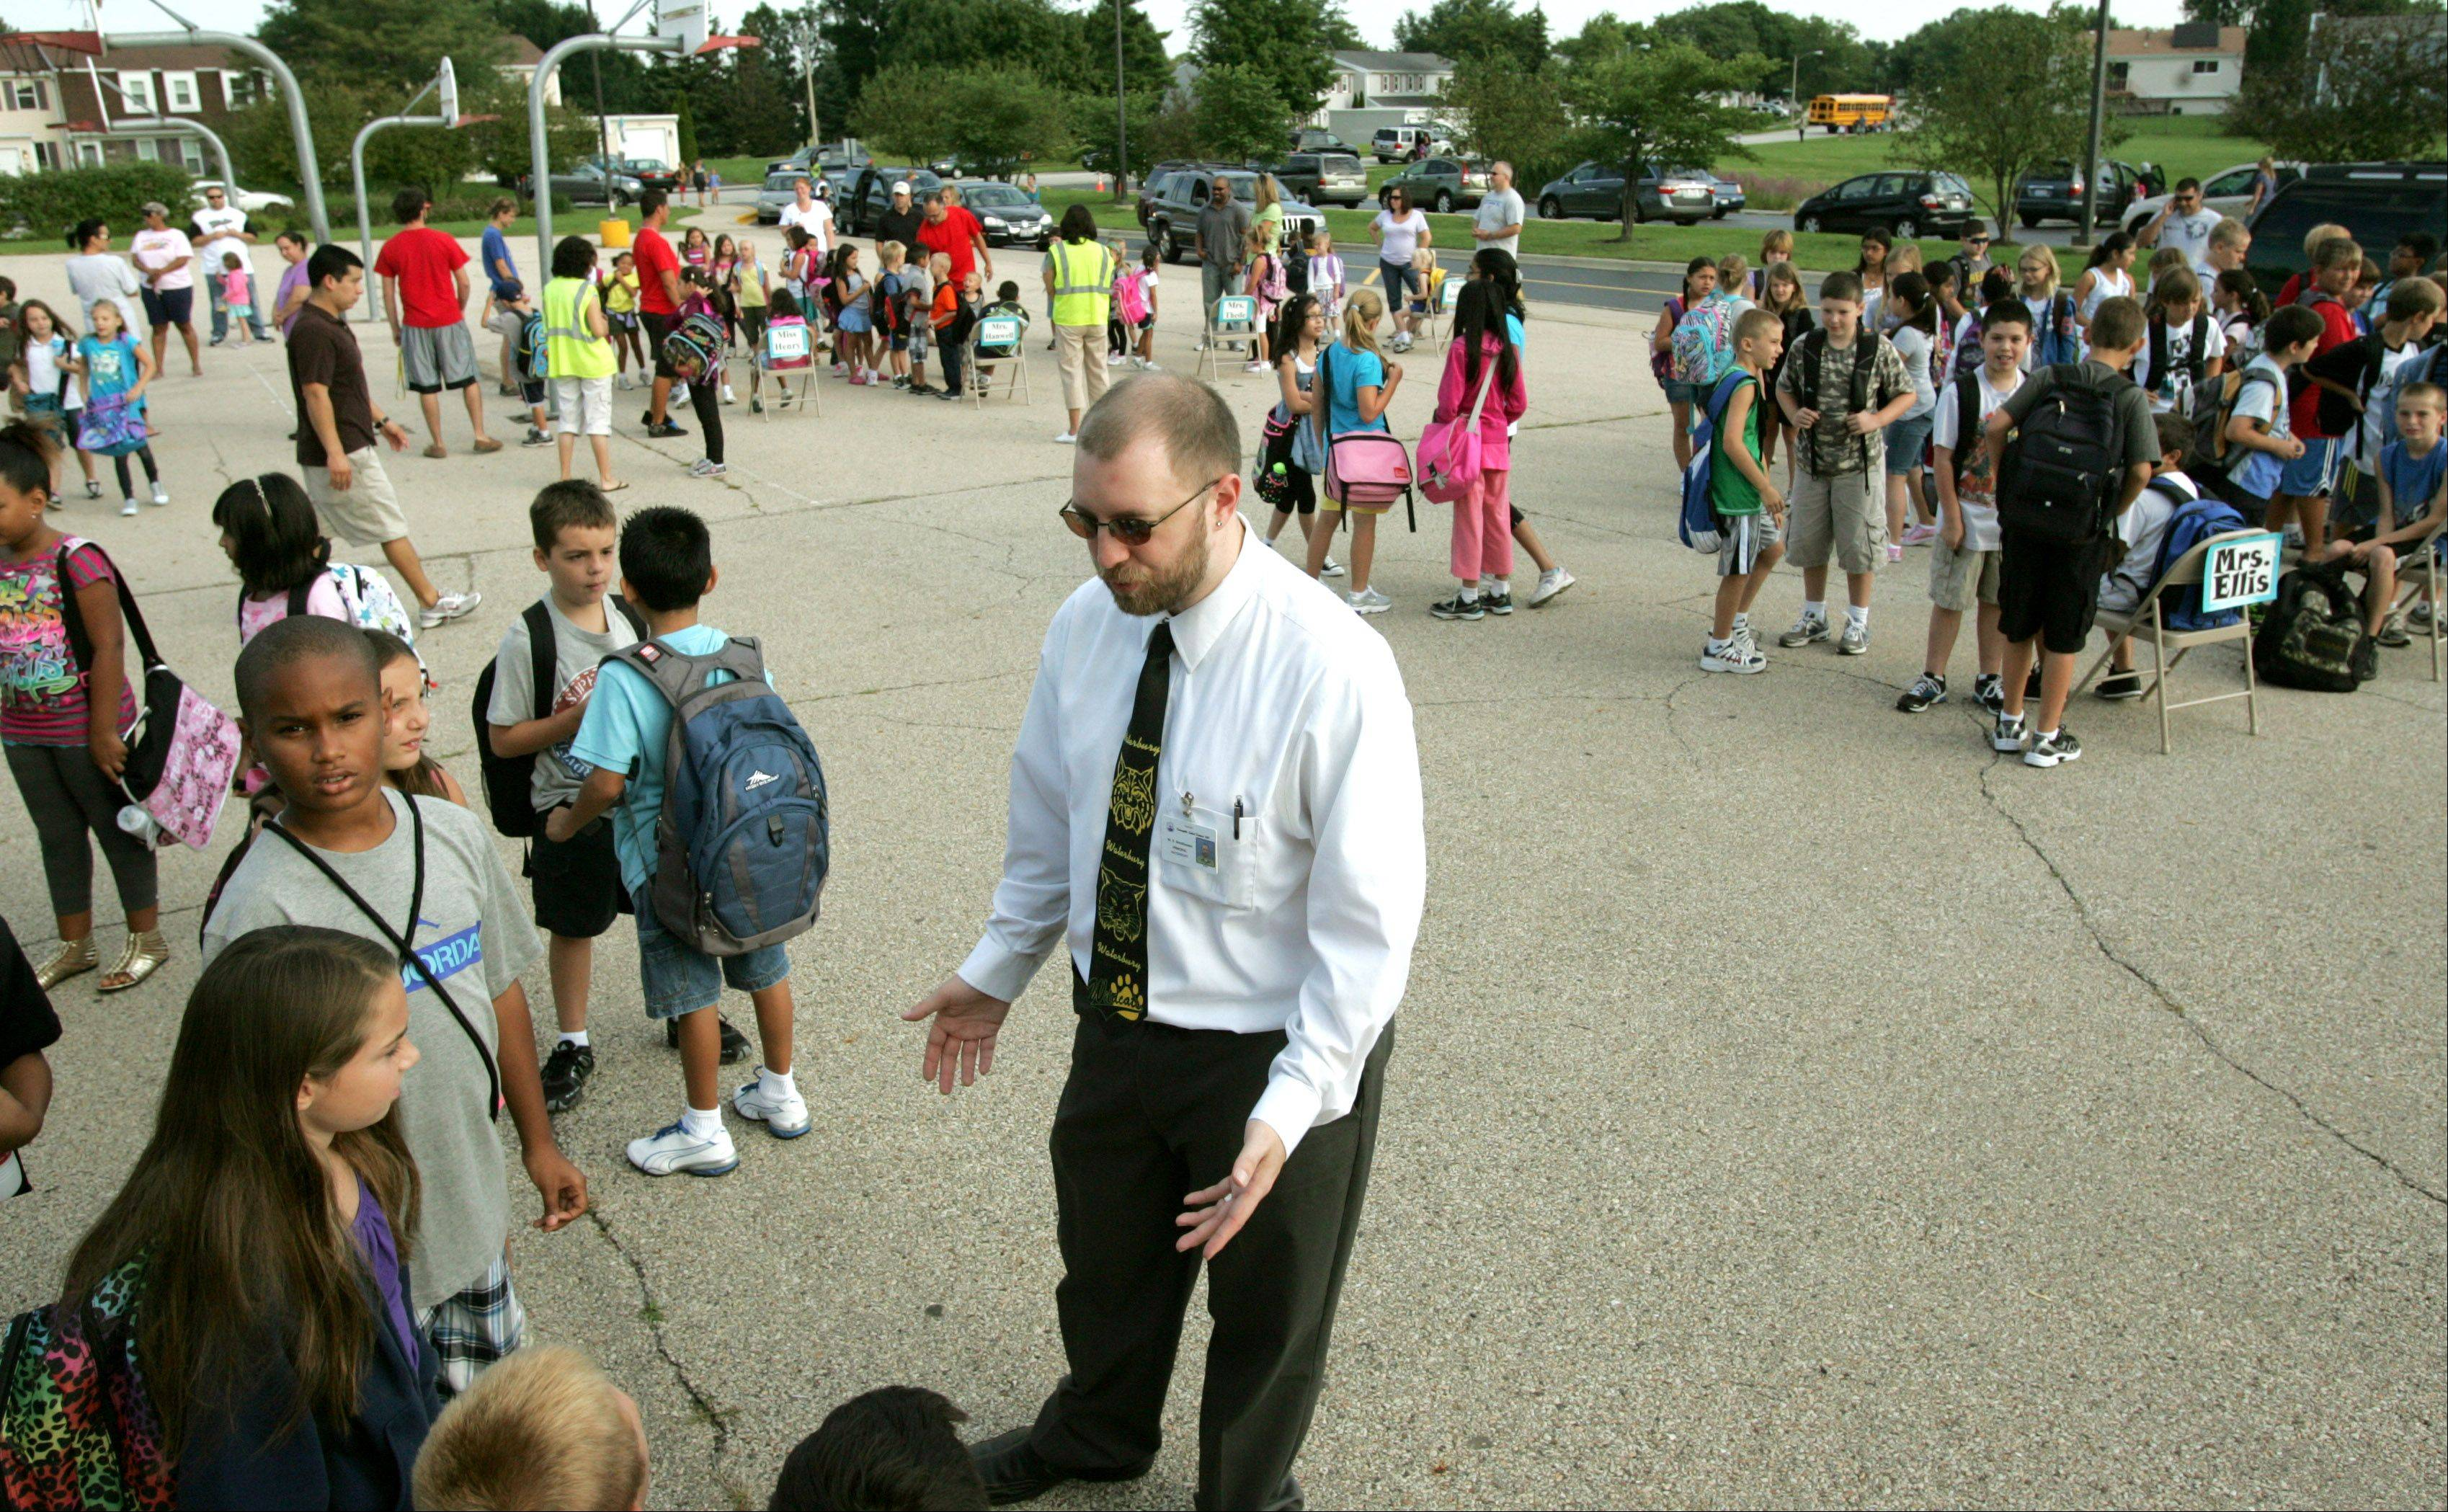 Dan Stockhausen, the new principal at Waterbury Elementary School in Roselle, greets students during their first week of classes.